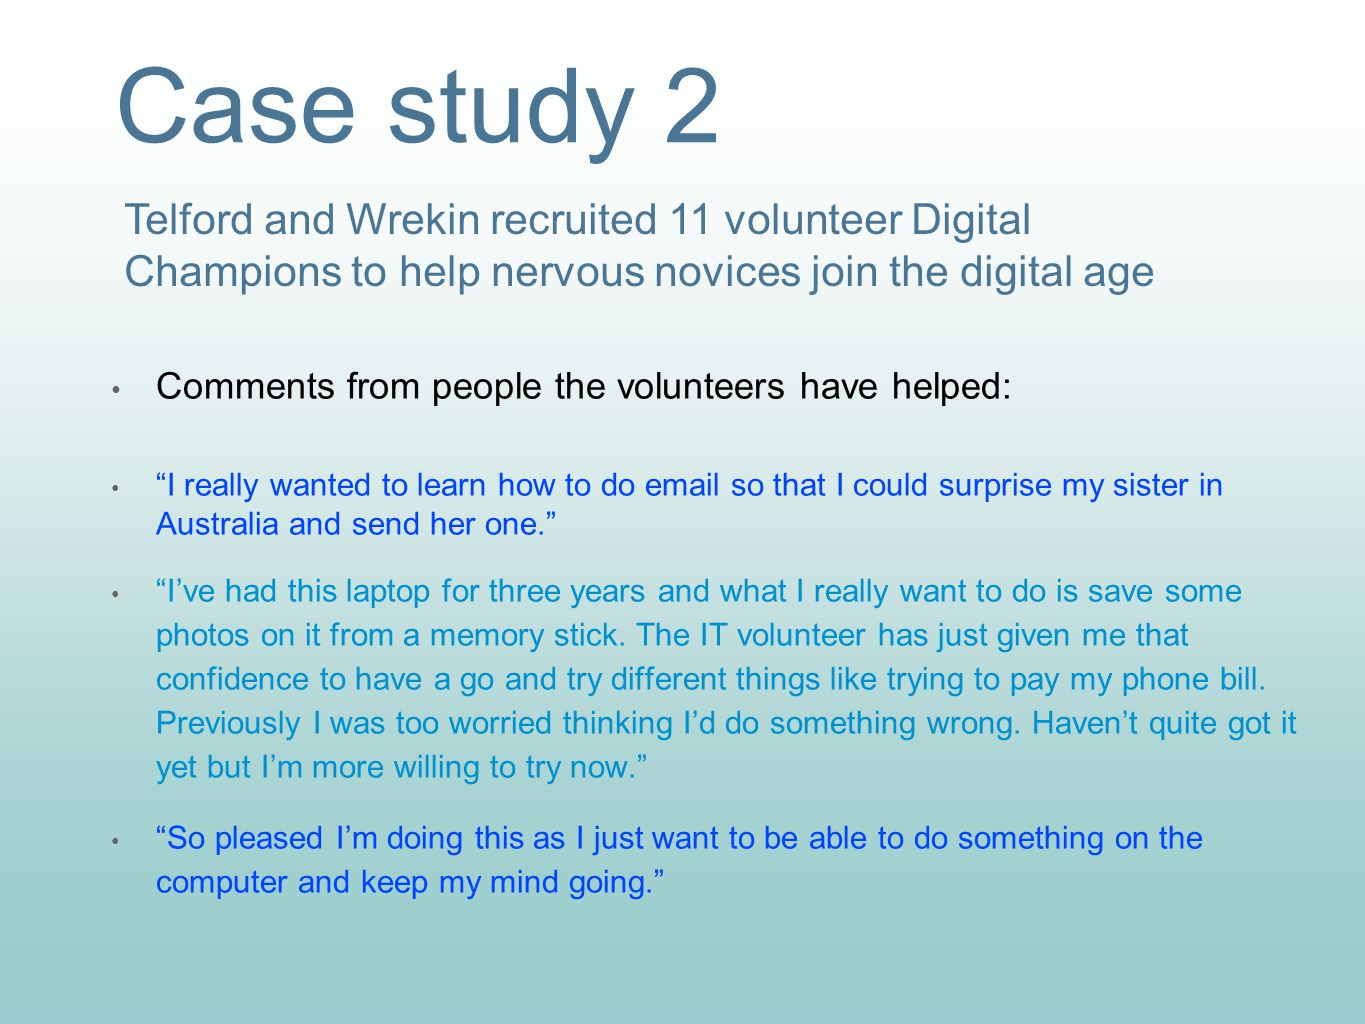 Case study 2 Comments from people the volunteers have helped: I really wanted to learn how to do email so that I could surprise my sister in Australia and send her one. I've had this laptop for three years and what I really want to do is save some photos on it from a memory stick.